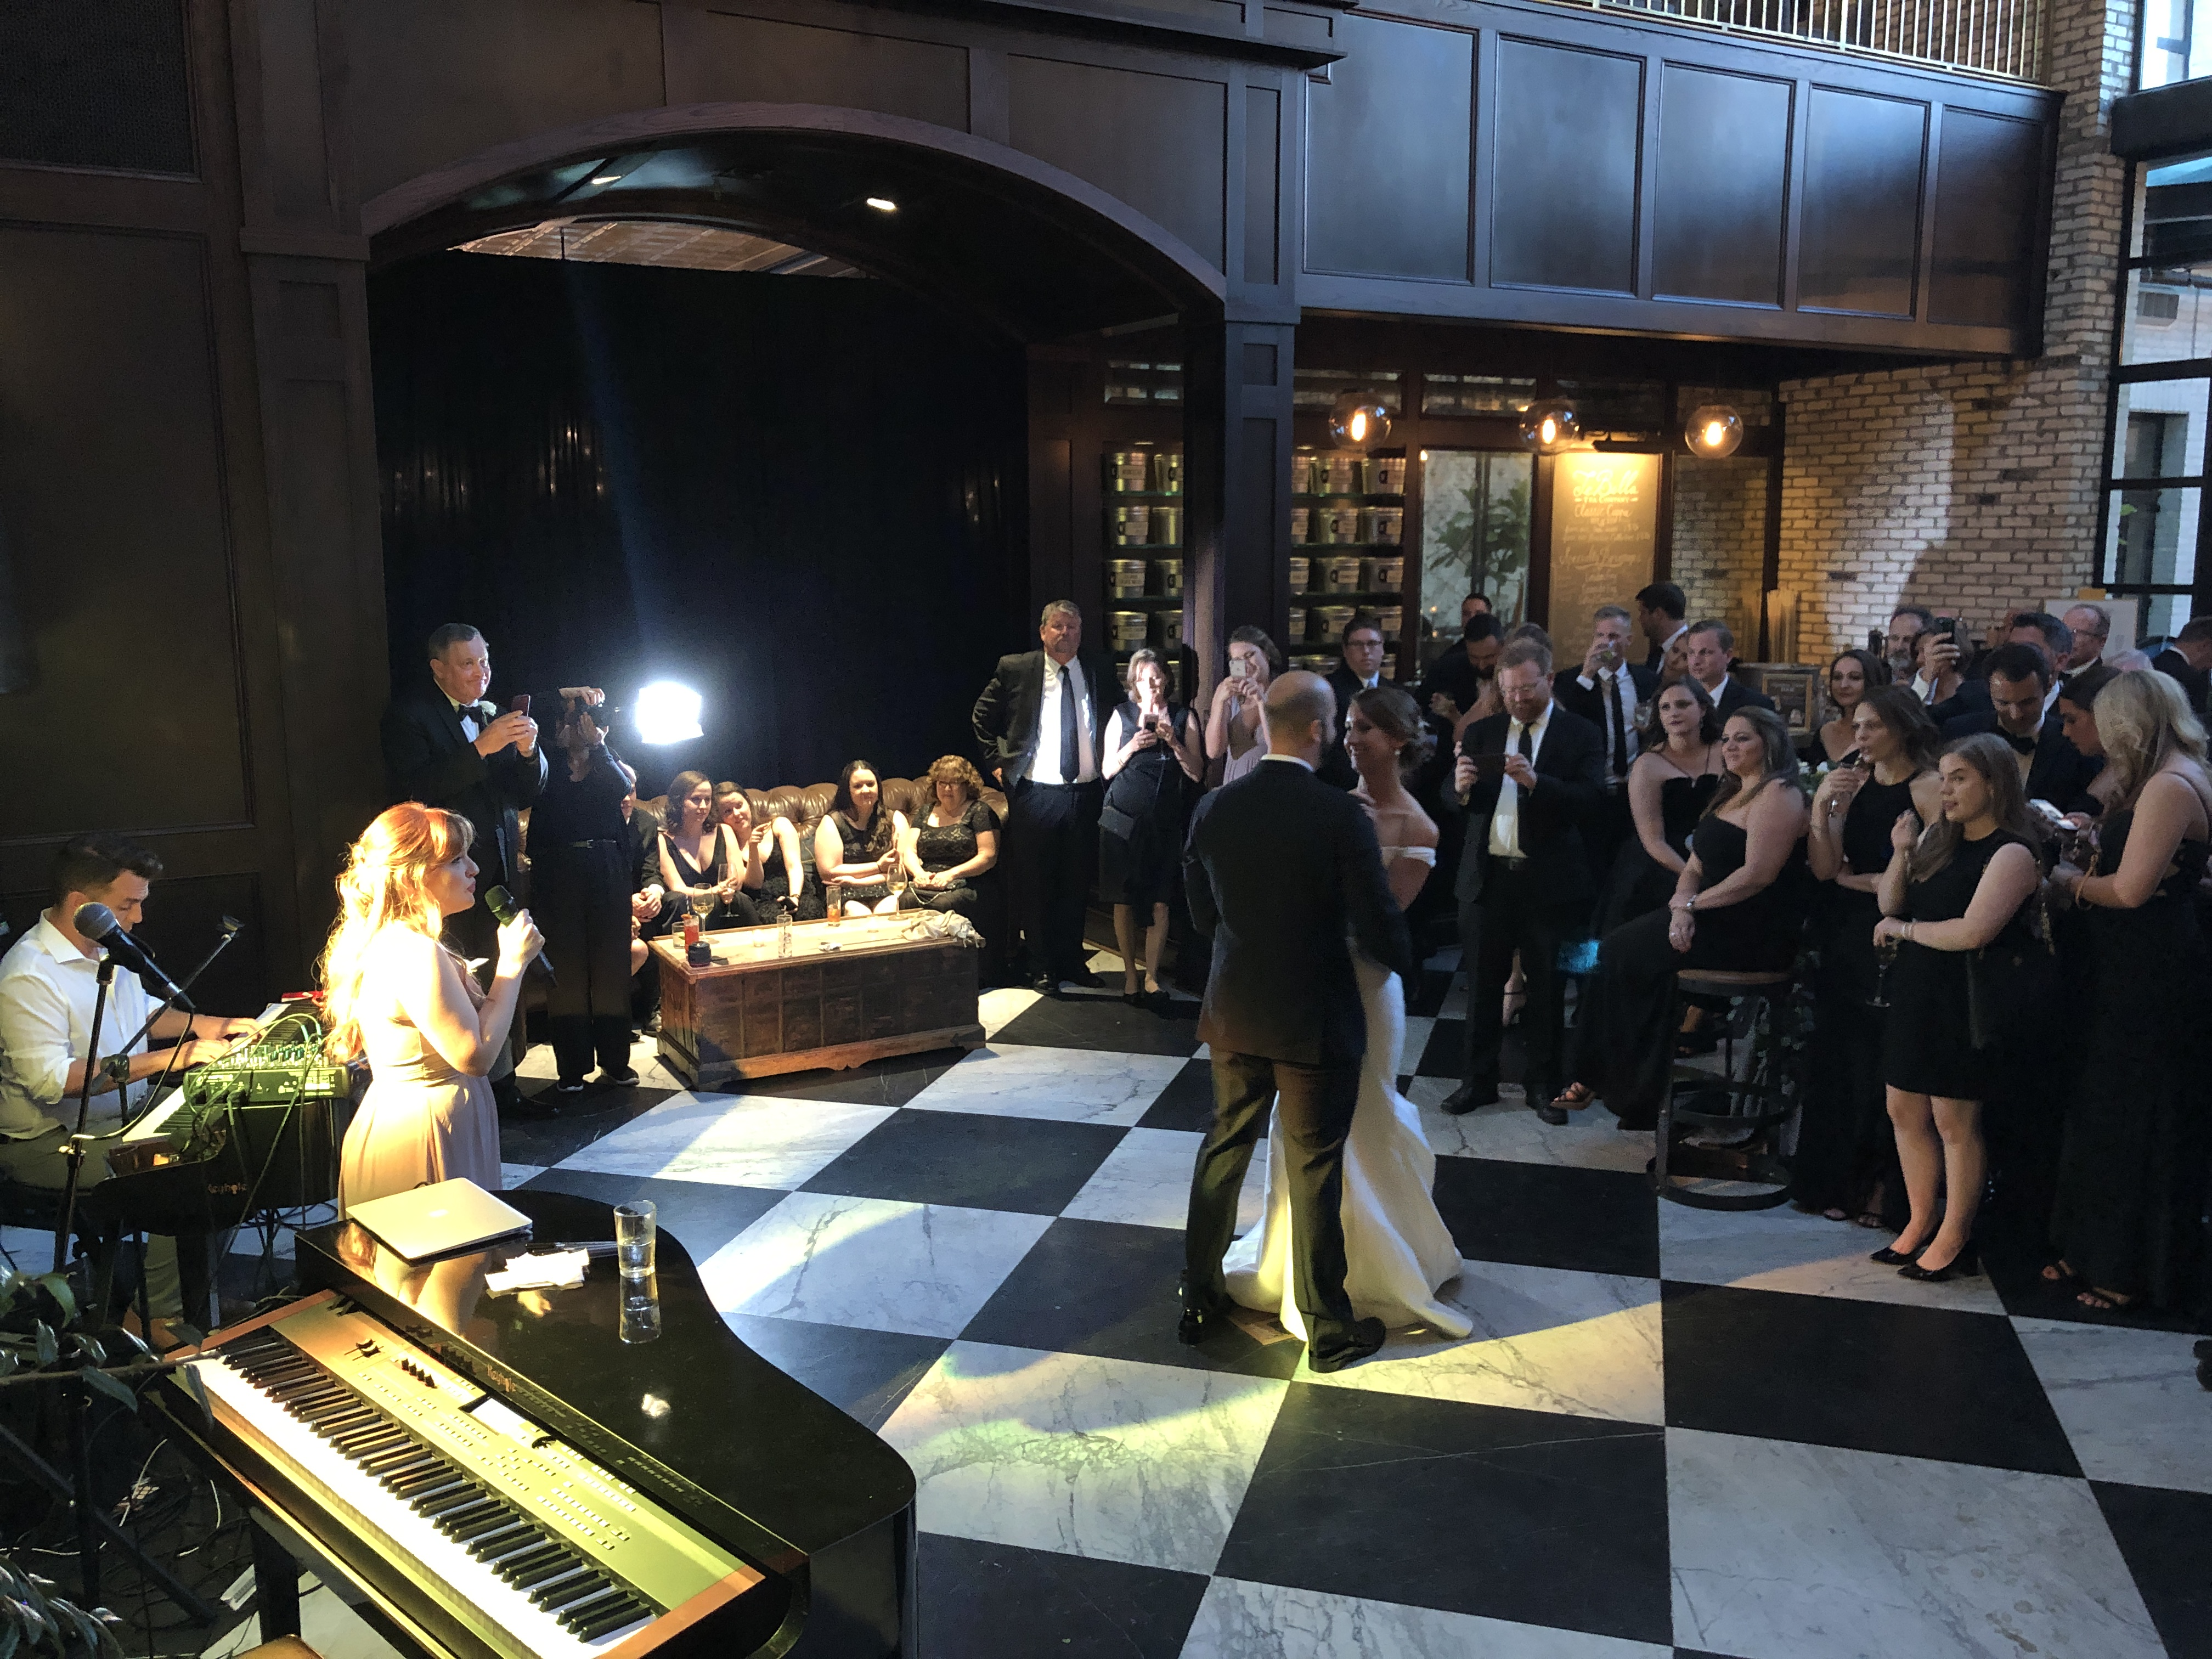 Oxford Exchange Wedding.Oxford Exchange Wedding Event Felix And Fingers Dueling Pianos